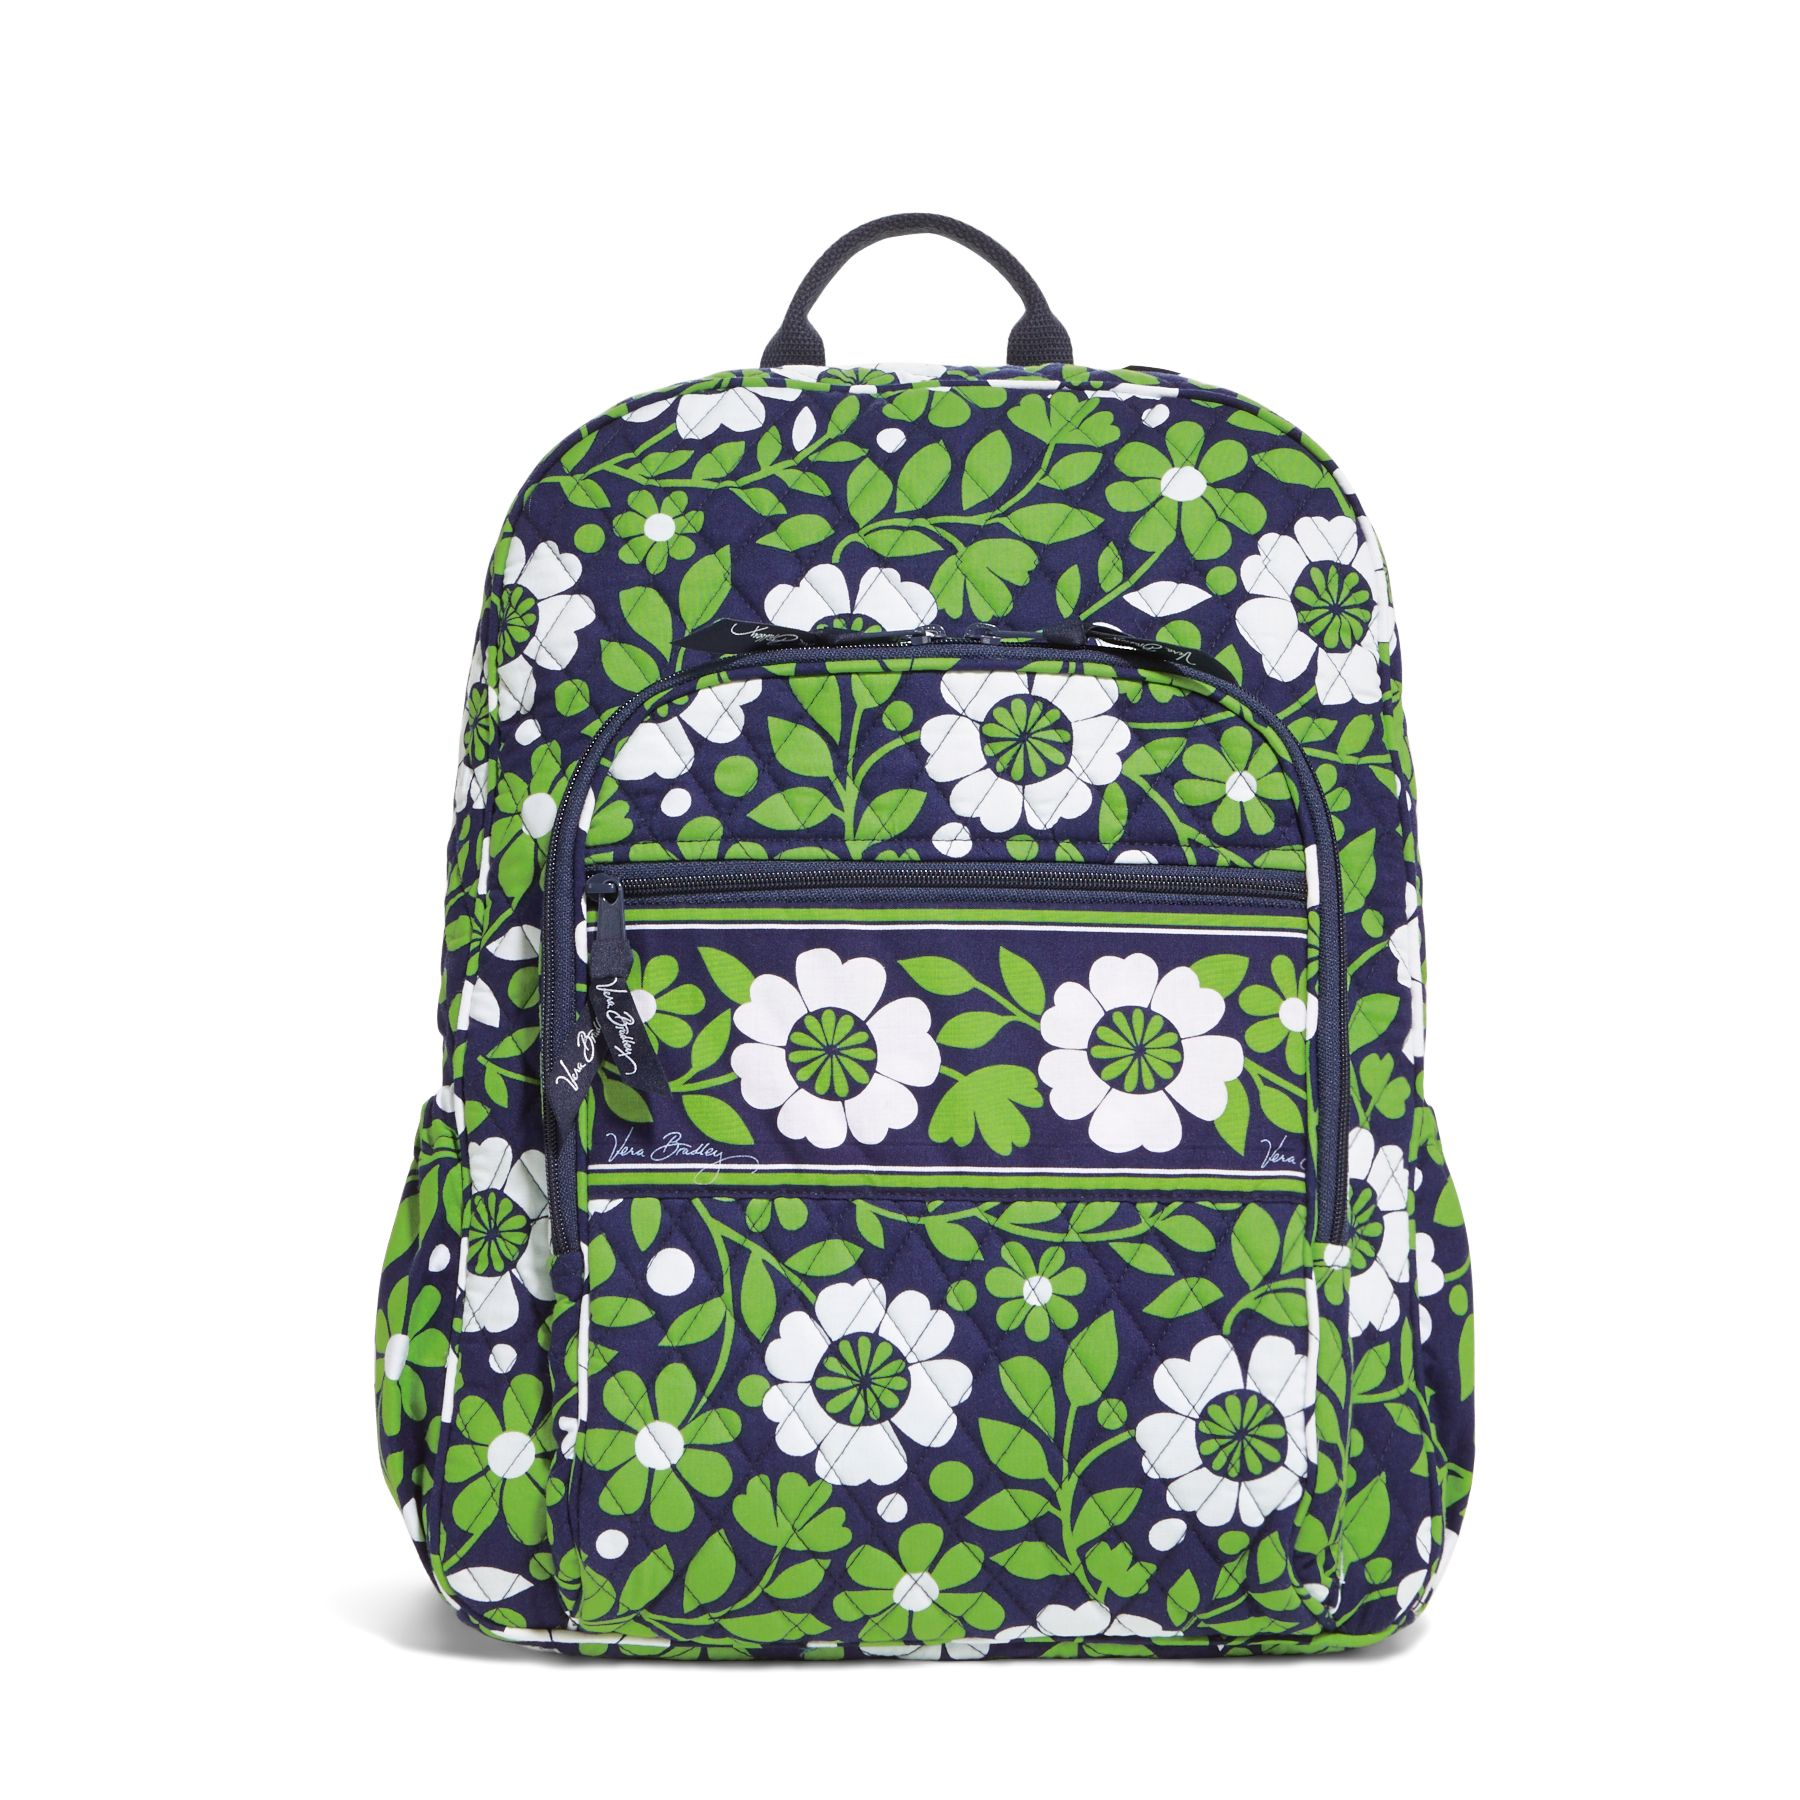 Vera Bradley Campus Backpack in Lucky You